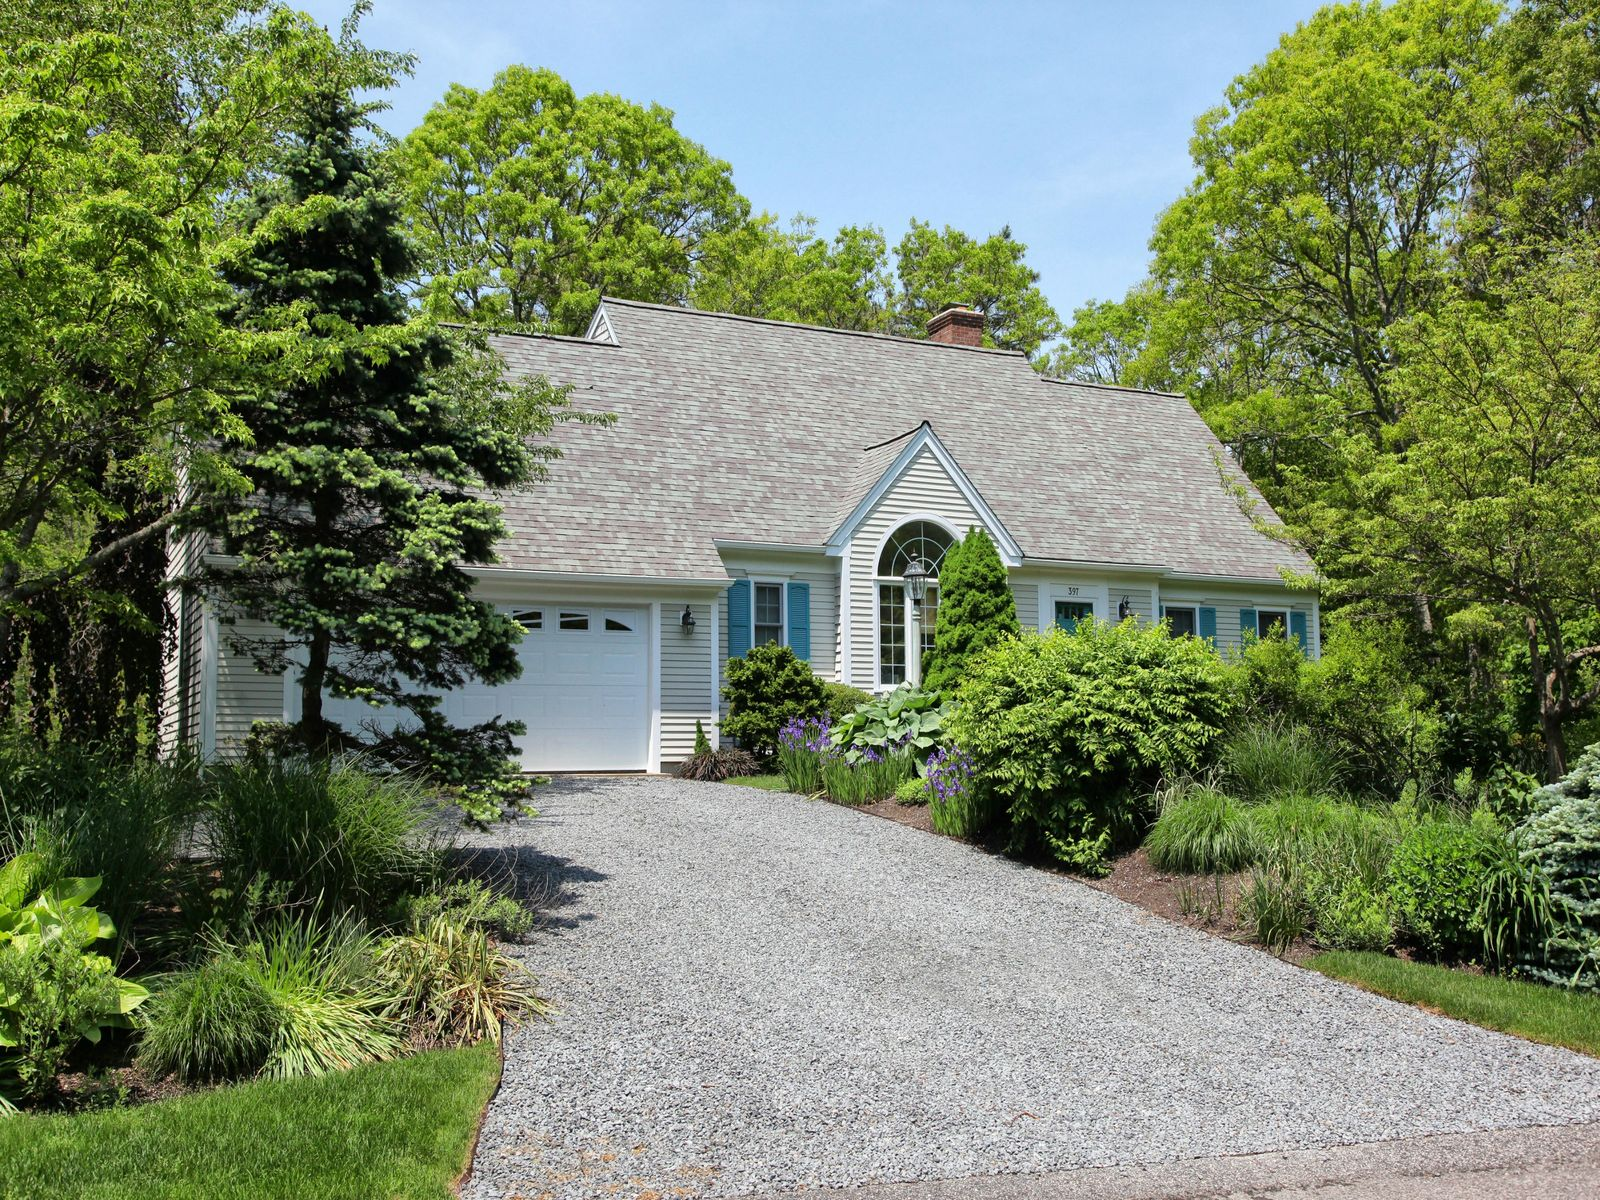 Tennis, Paddle and River Access, Centerville MA Single Family Home - Cape Cod Real Estate